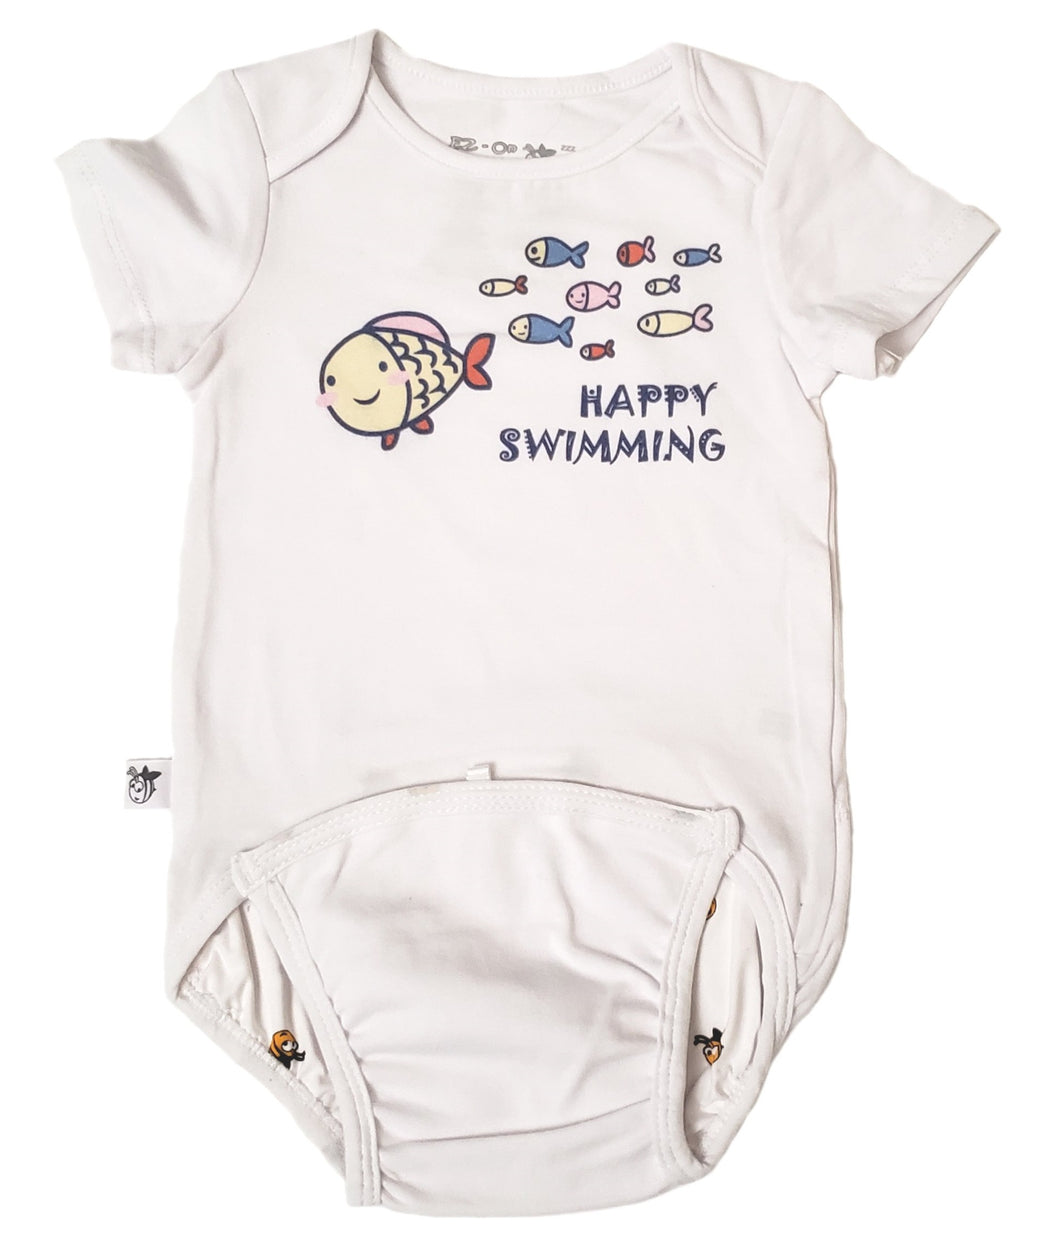 EZ-On BaBeez™ - Spring & Summer - Happy Swimming - on White - Baby Bodysuit